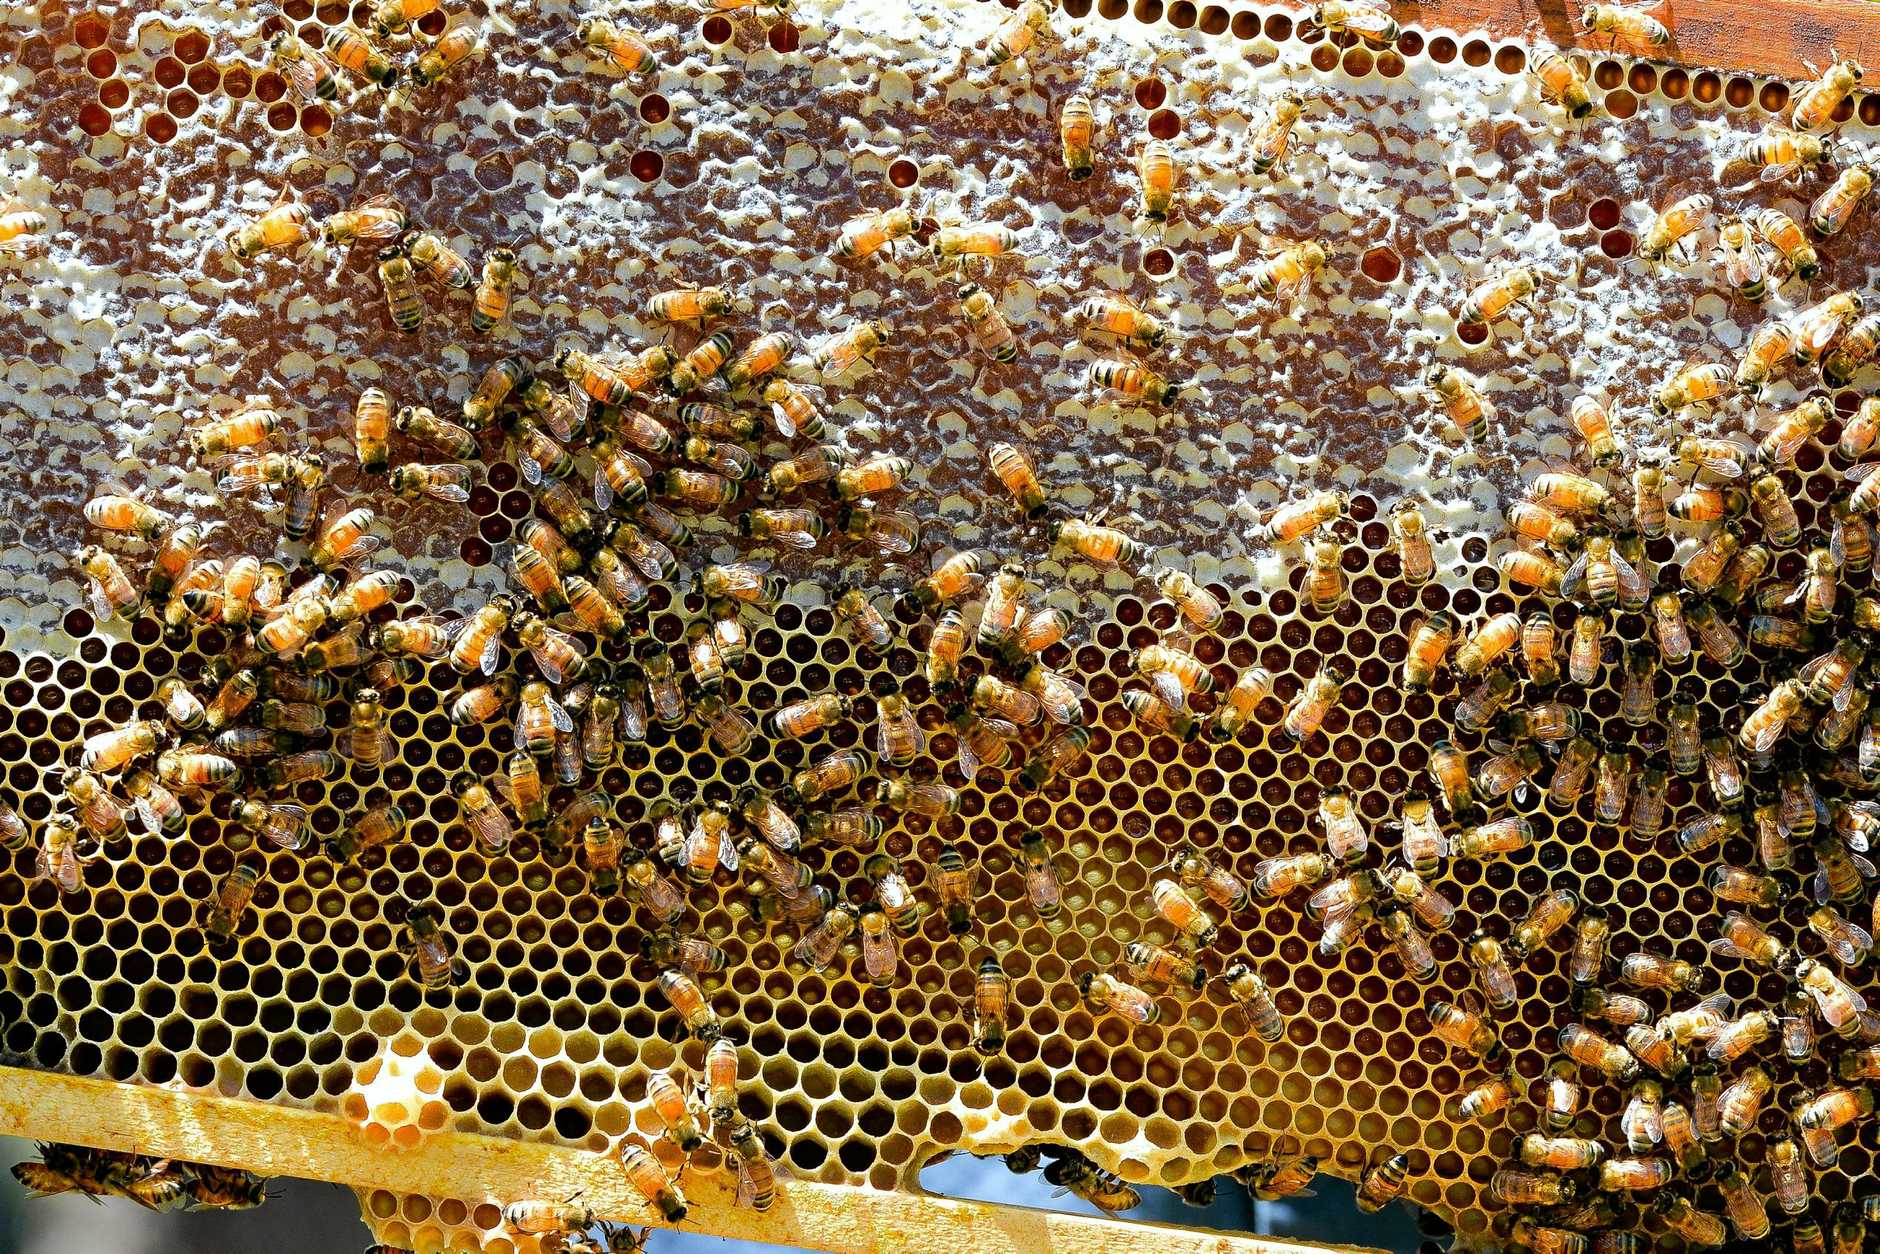 In the case of the Corindi outbreak a 'Biosecutiry Undertaking' has been entered into with the bee keeper and approximately 1500 hives destroyed.